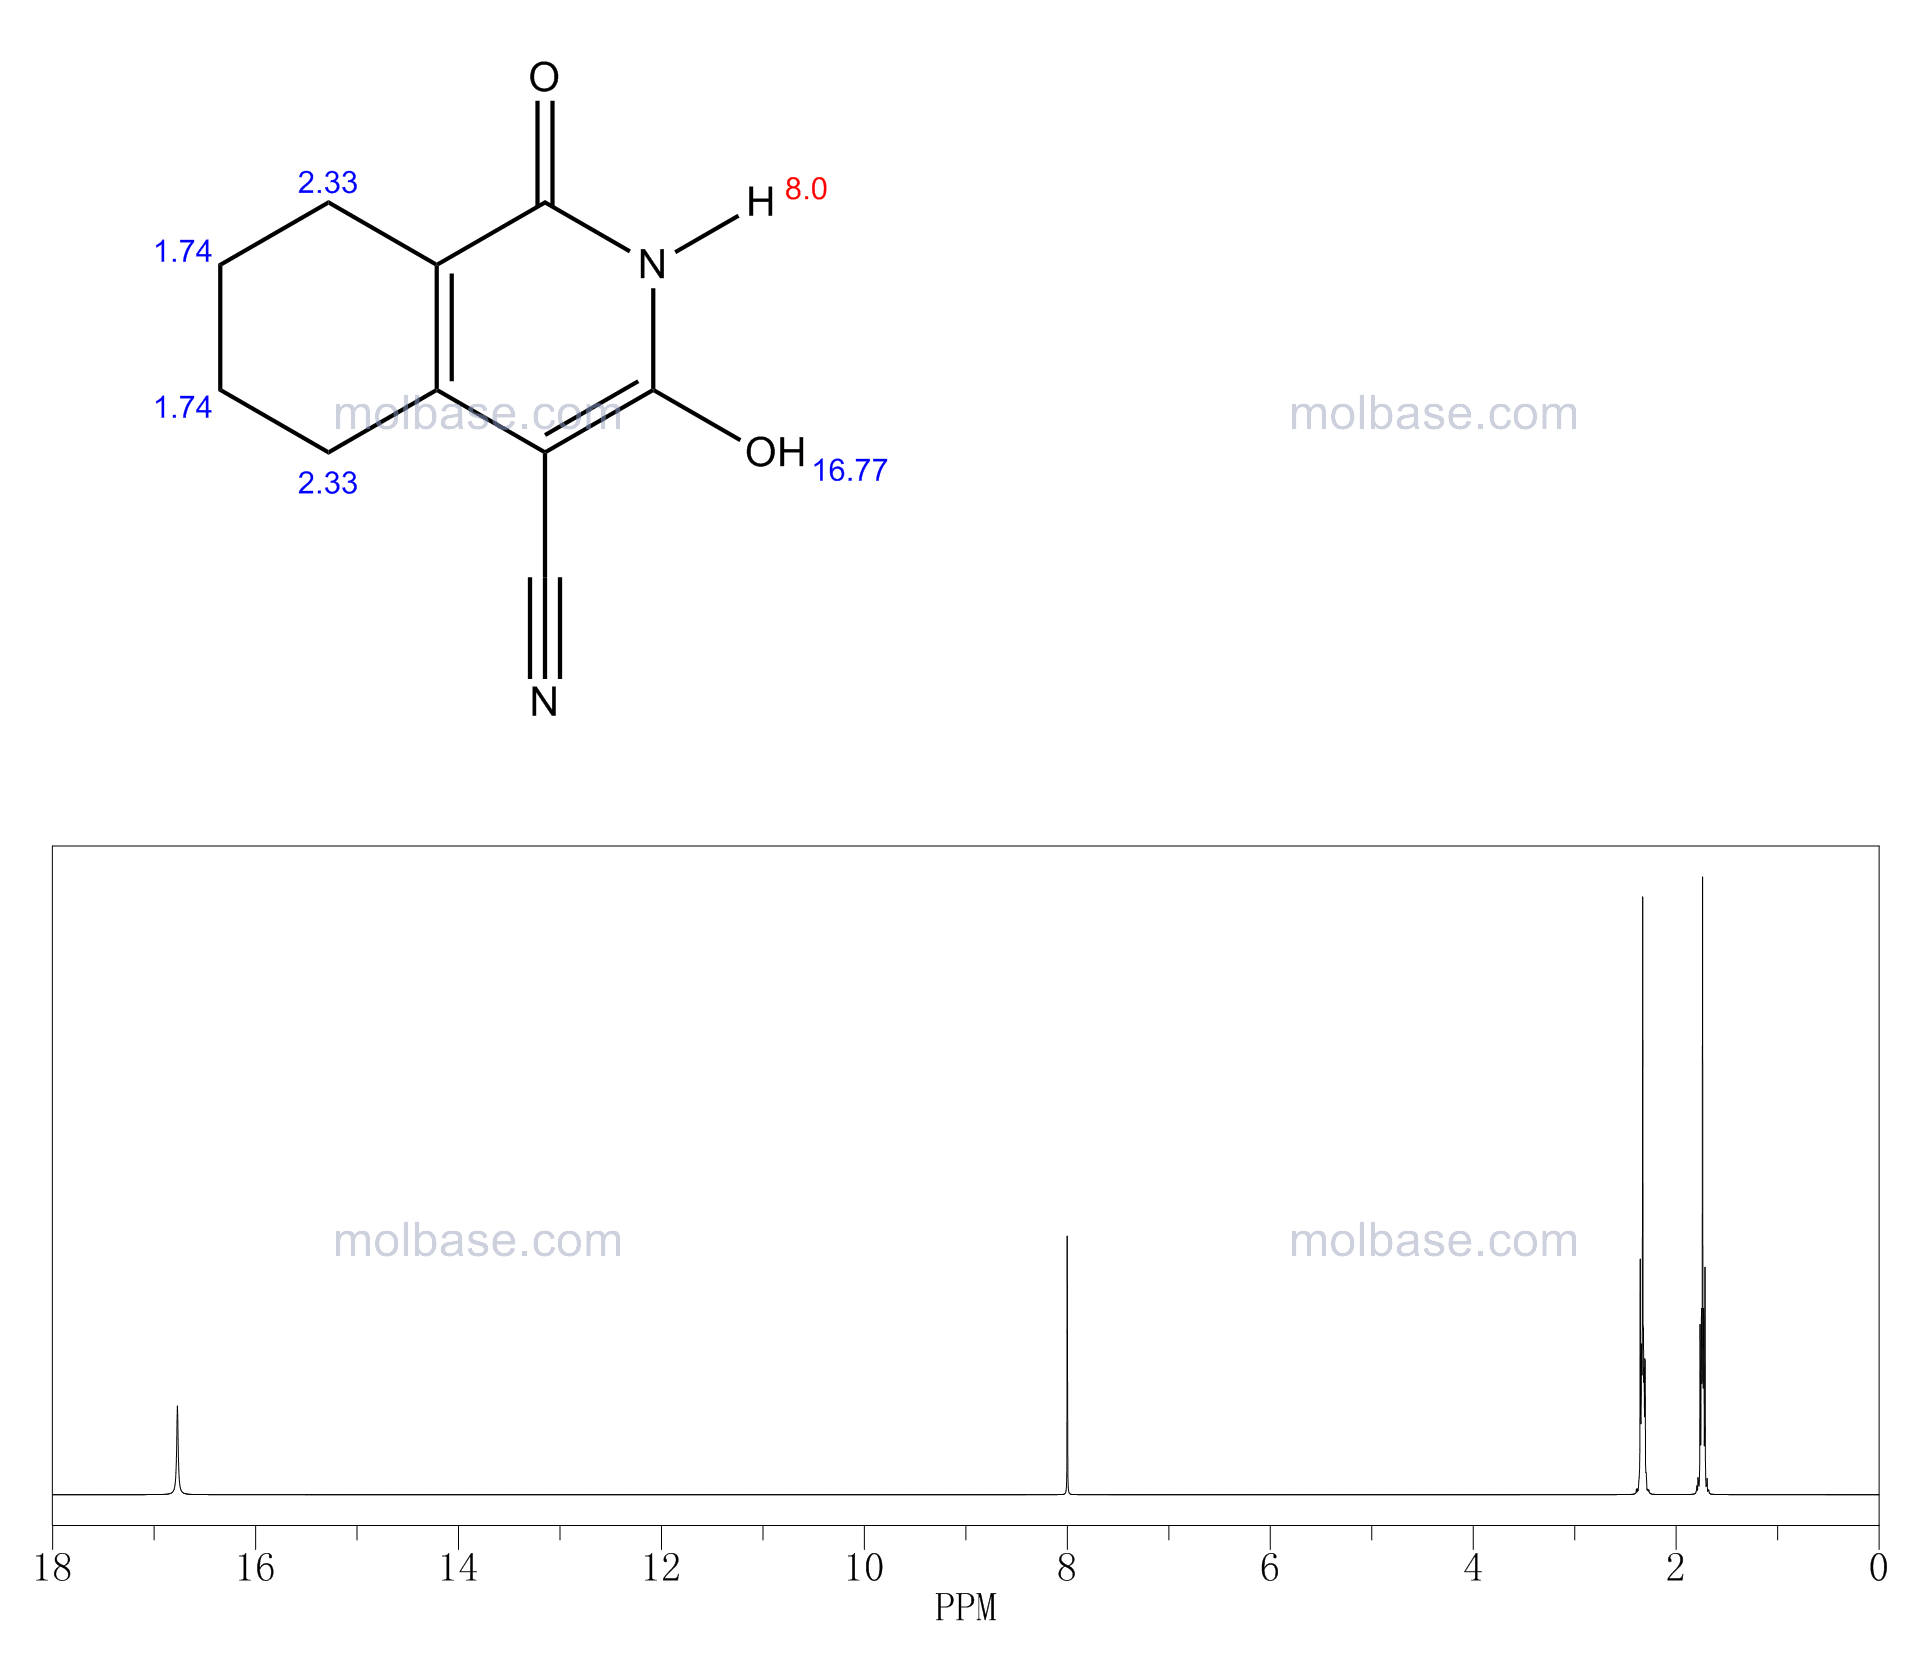 1-hydroxy-3-oxo-5,6,7,8-tetrahydro-2H-isoquinoline-4-carbonitrile NMR spectra analysis, Chemical CAS NO. 52903-71-6 NMR spectral analysis, 1-hydroxy-3-oxo-5,6,7,8-tetrahydro-2H-isoquinoline-4-carbonitrile C-NMR spectrum